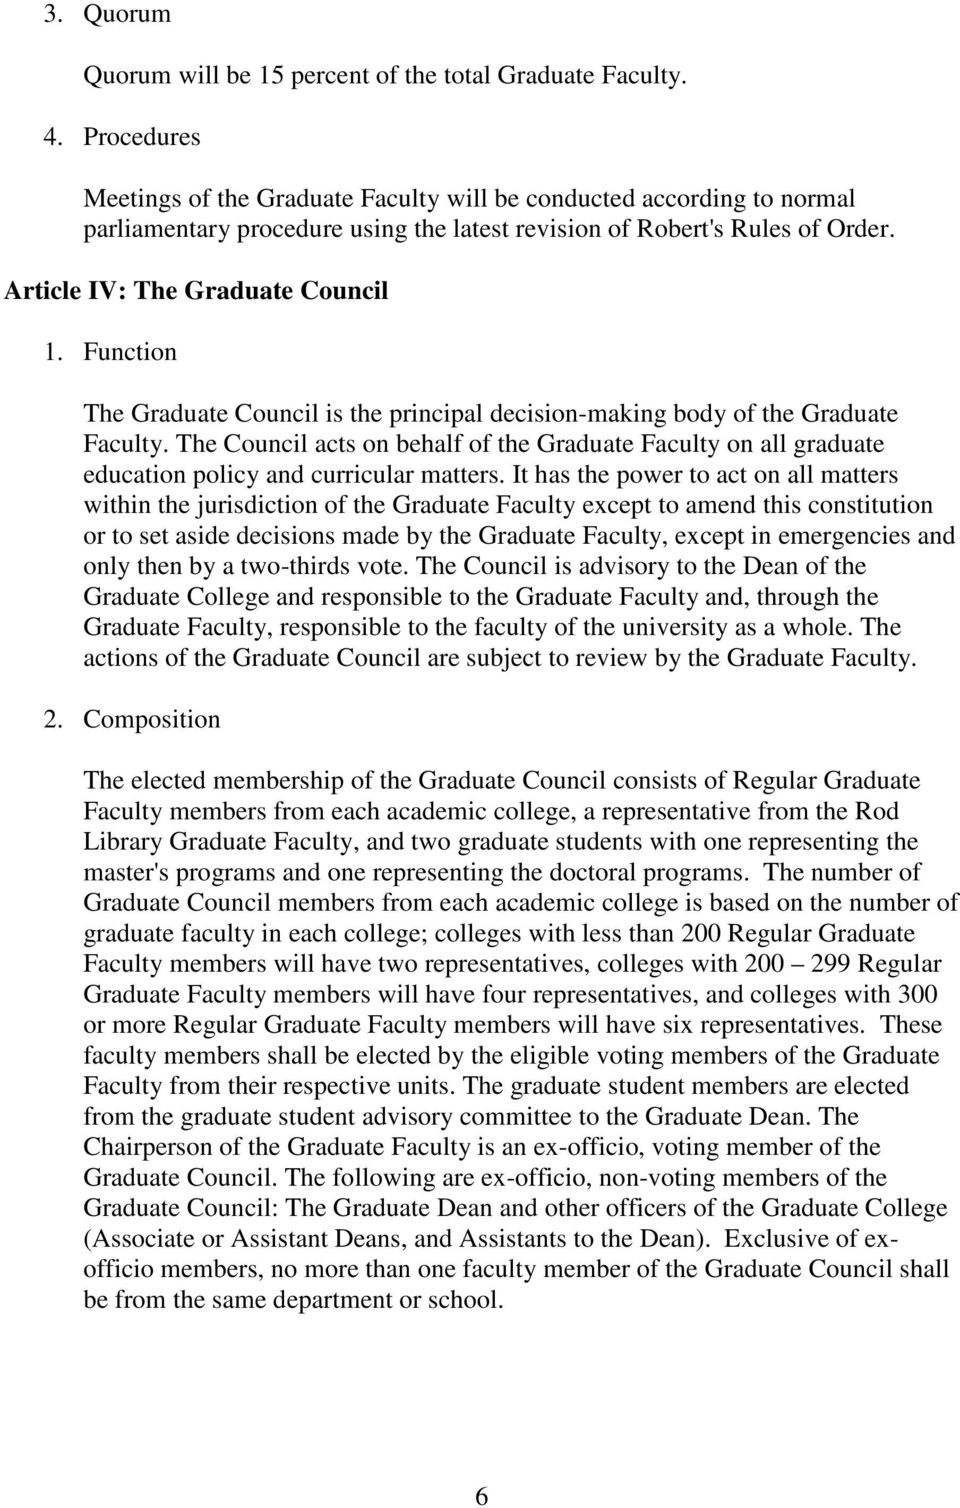 Function The Graduate Council is the principal decision-making body of the Graduate Faculty. The Council acts on behalf of the Graduate Faculty on all graduate education policy and curricular matters.